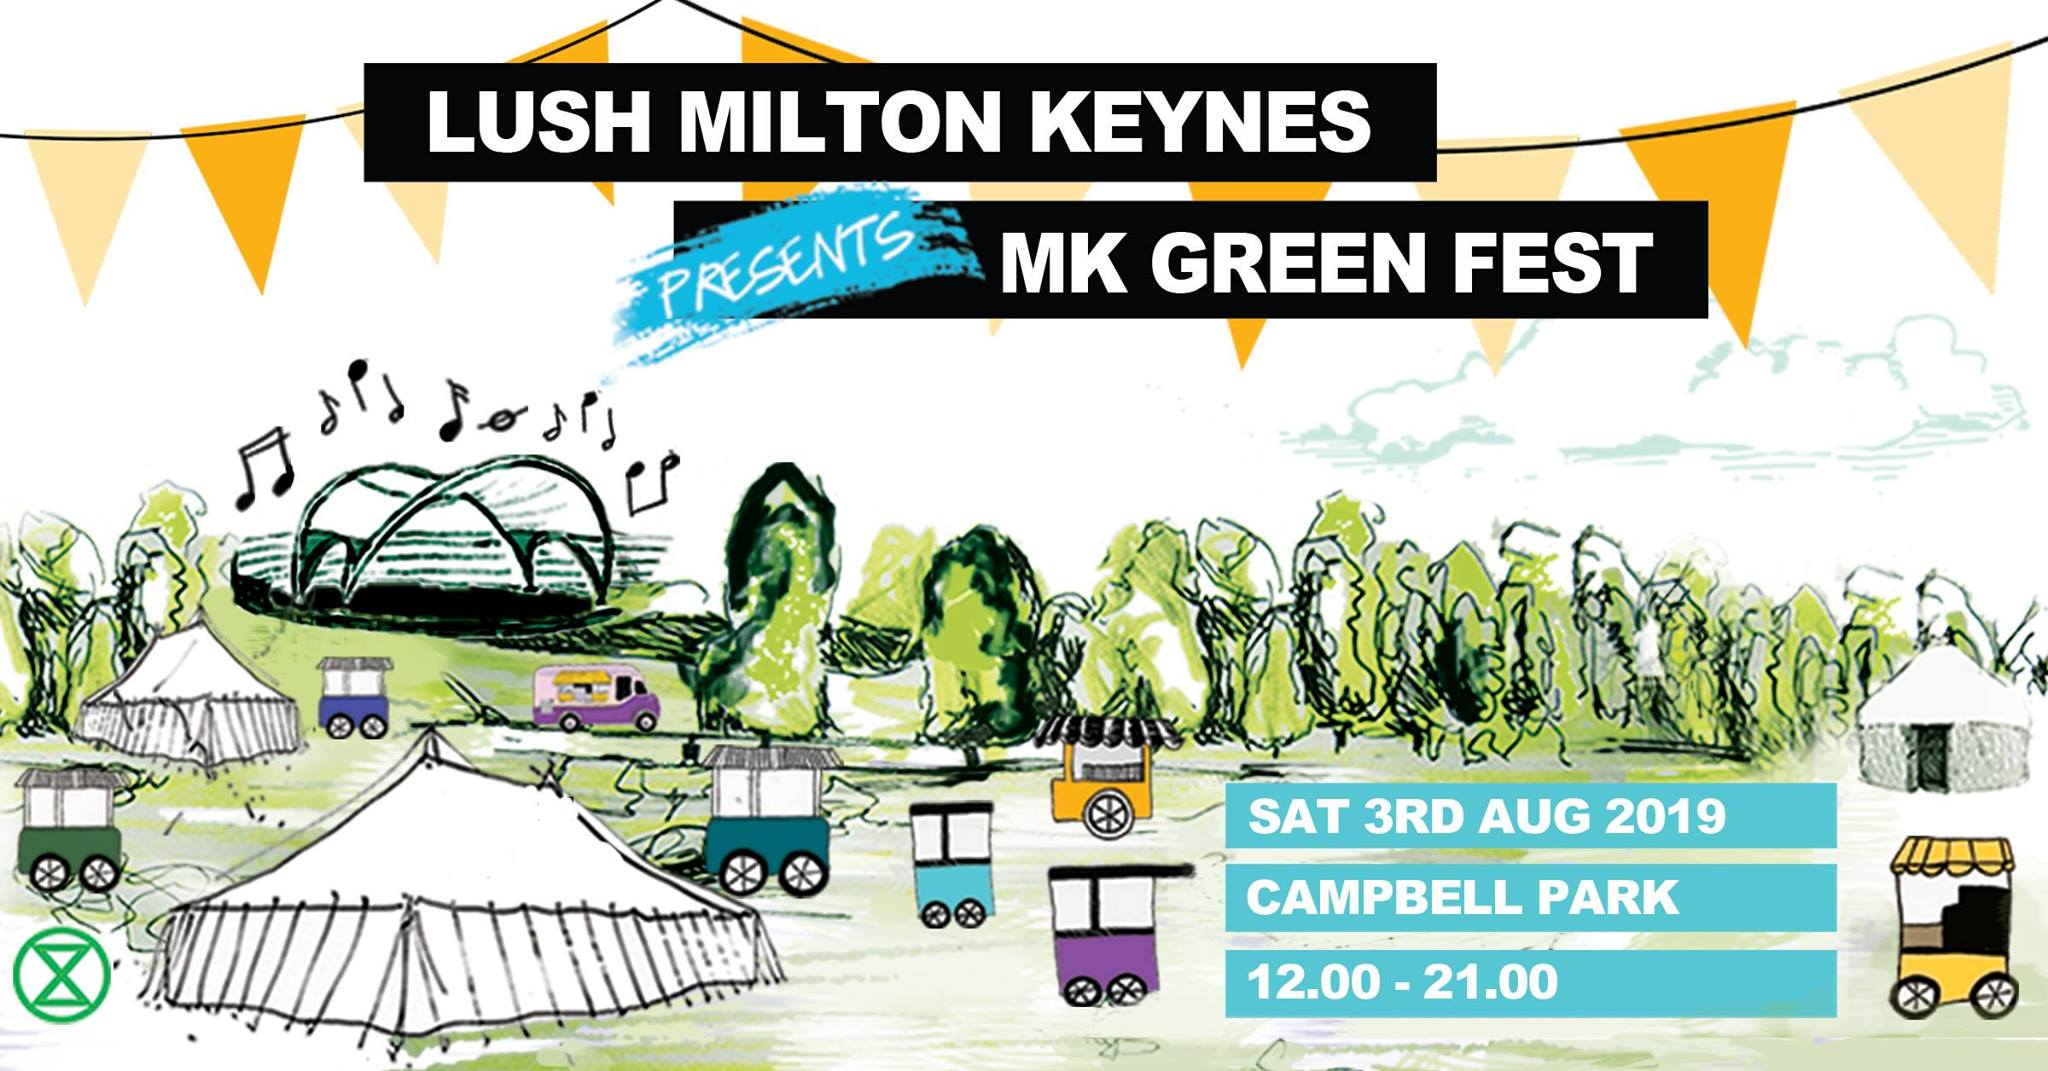 MK GREEN FEST - LUSH MILTON KEYNES - Saturday 3rd August 2019Time: 1200pm - 9pmVenue: Campbell Park, Milton Keynes